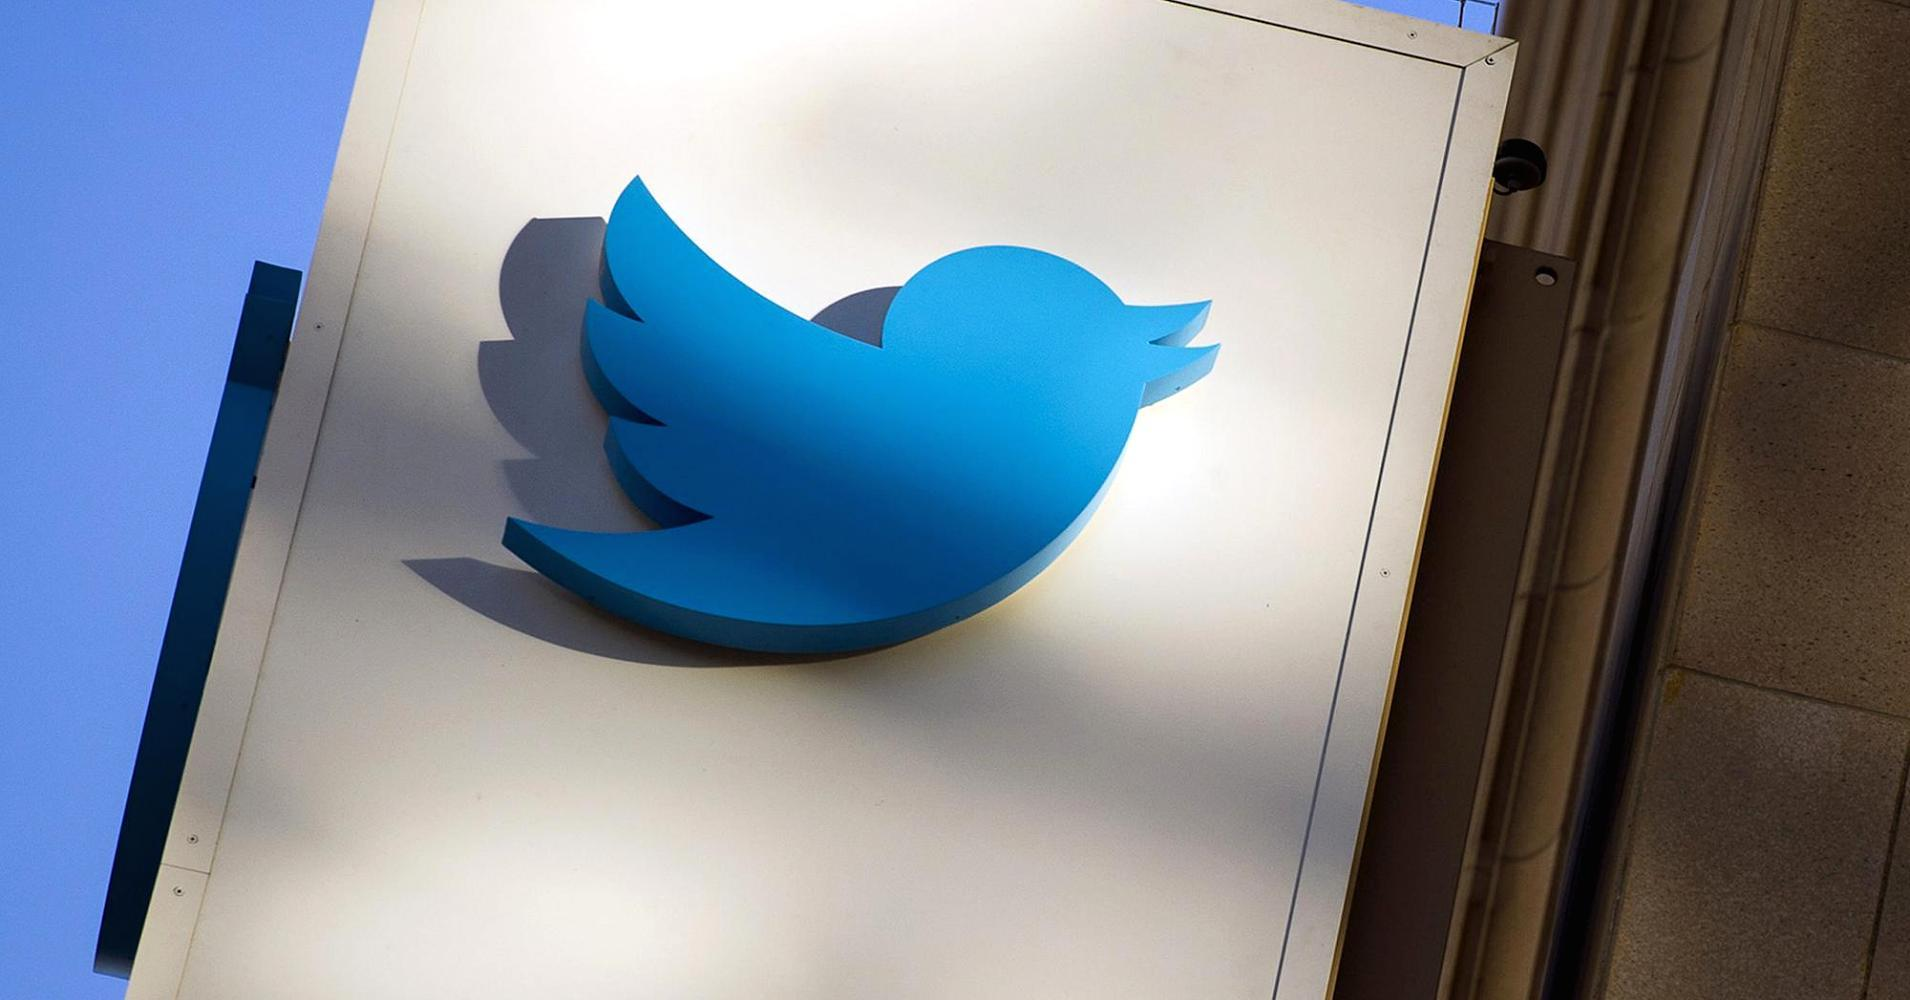 Cramer: Expect Twitter to go higher after layoffs